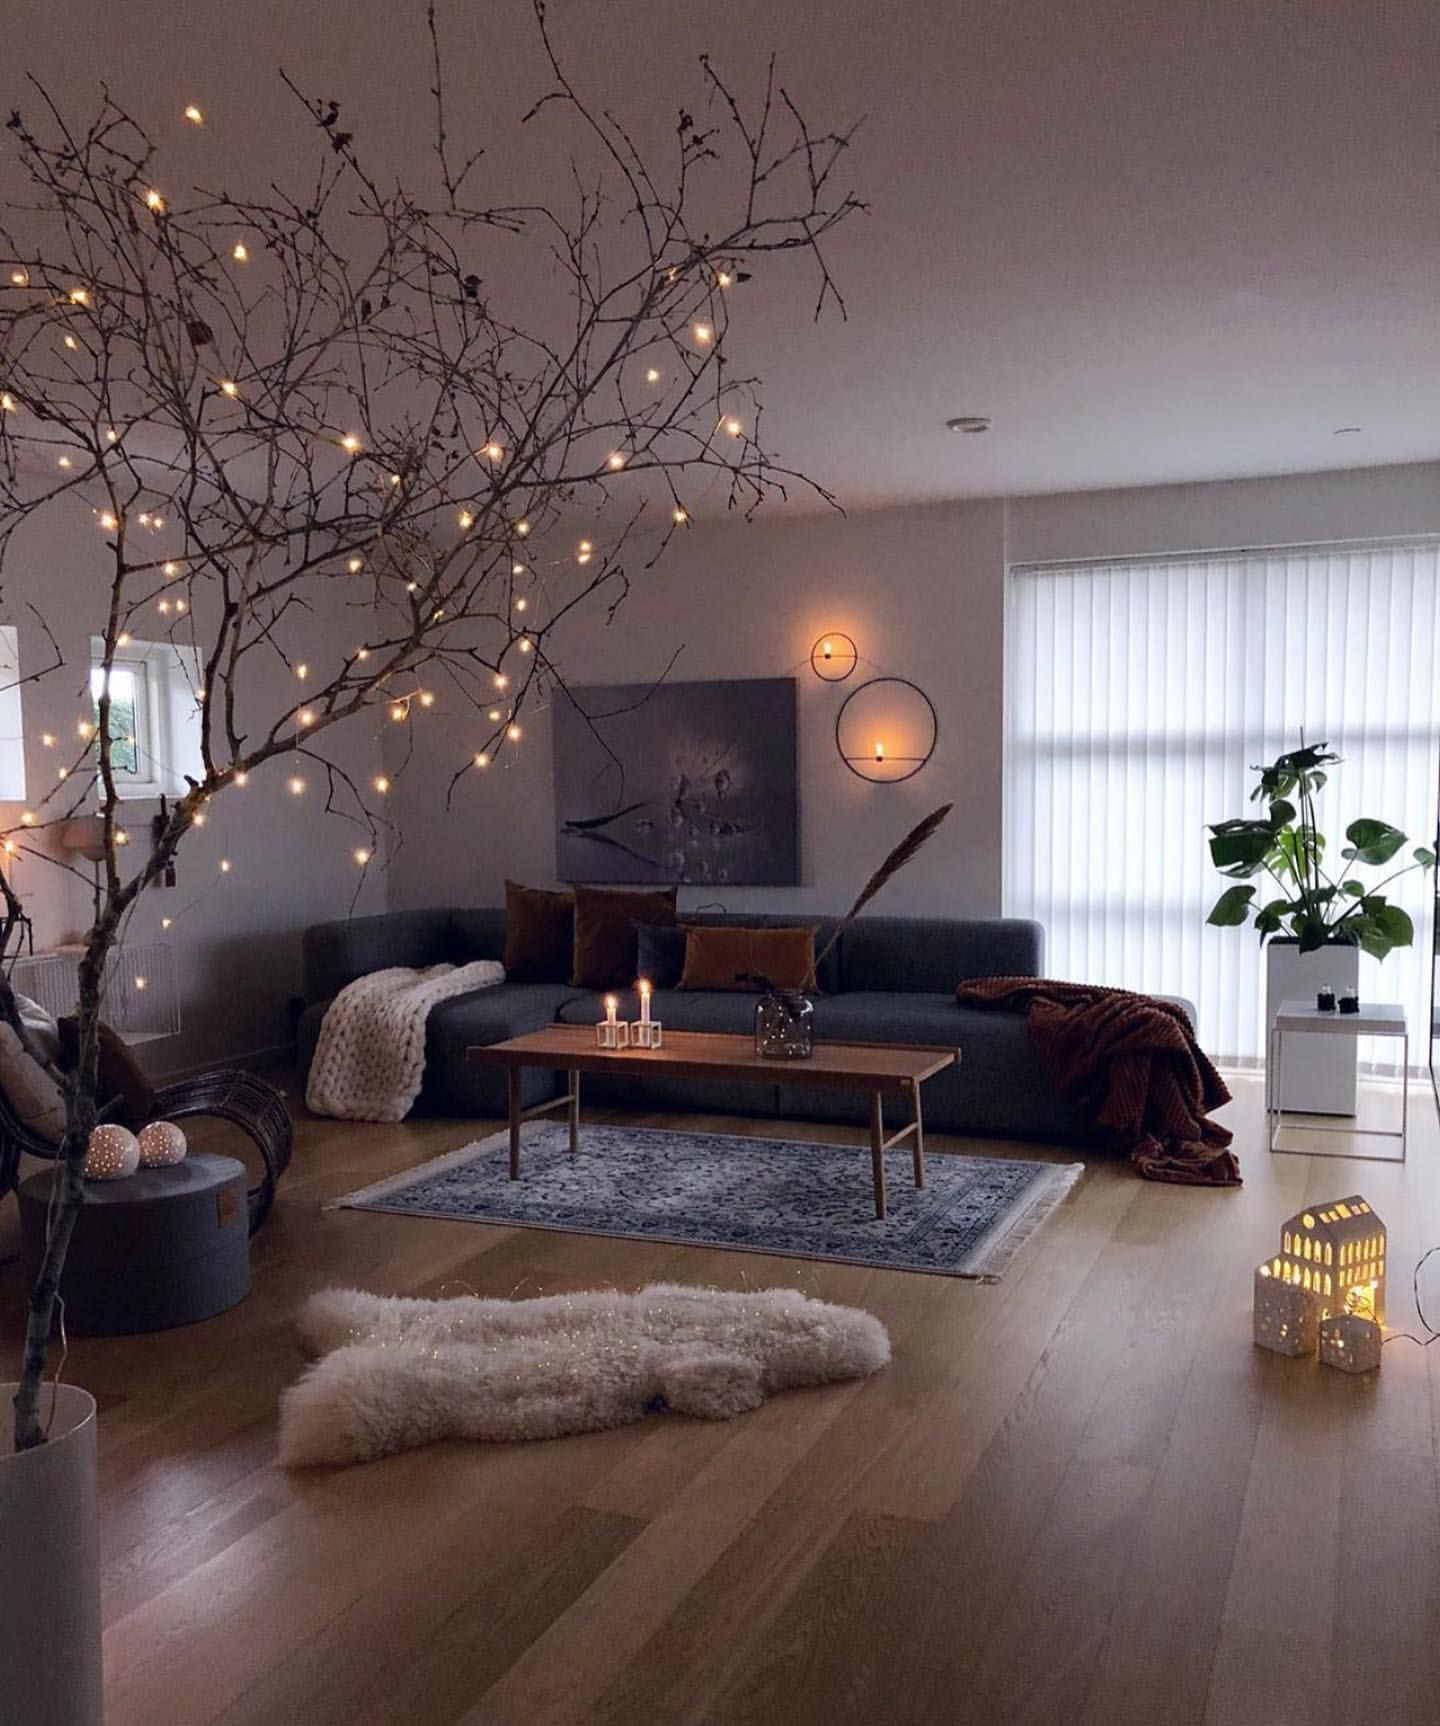 Pin By Prachi On Lamp Dreamy Living Room Apartment Decor Home